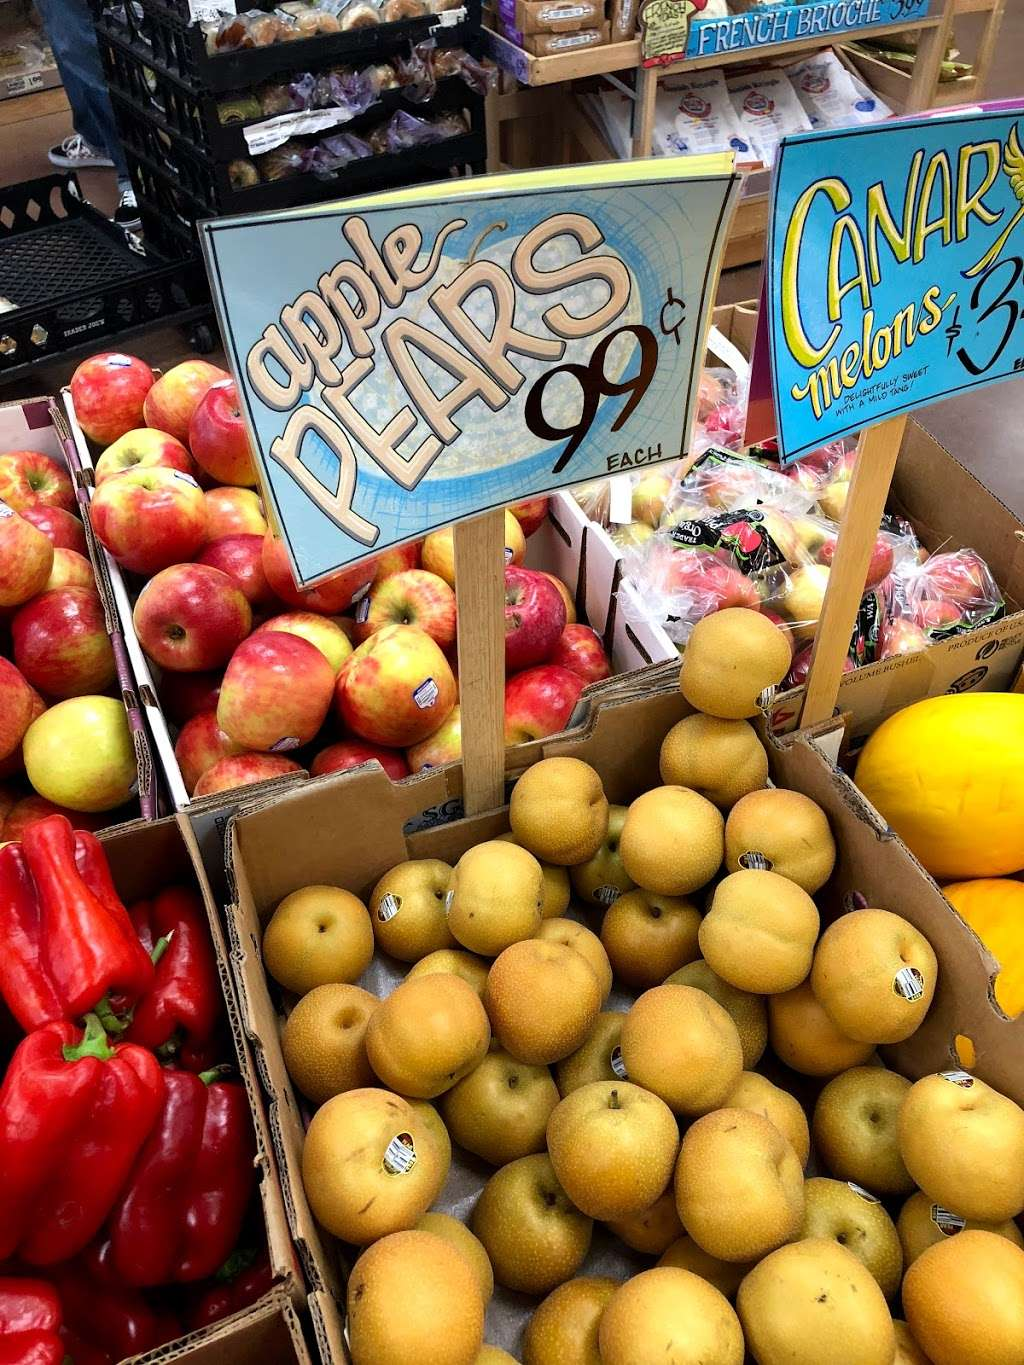 Trader Joes - florist  | Photo 10 of 10 | Address: 6150 Slauson Ave, Culver City, CA 90230, USA | Phone: (310) 313-0441